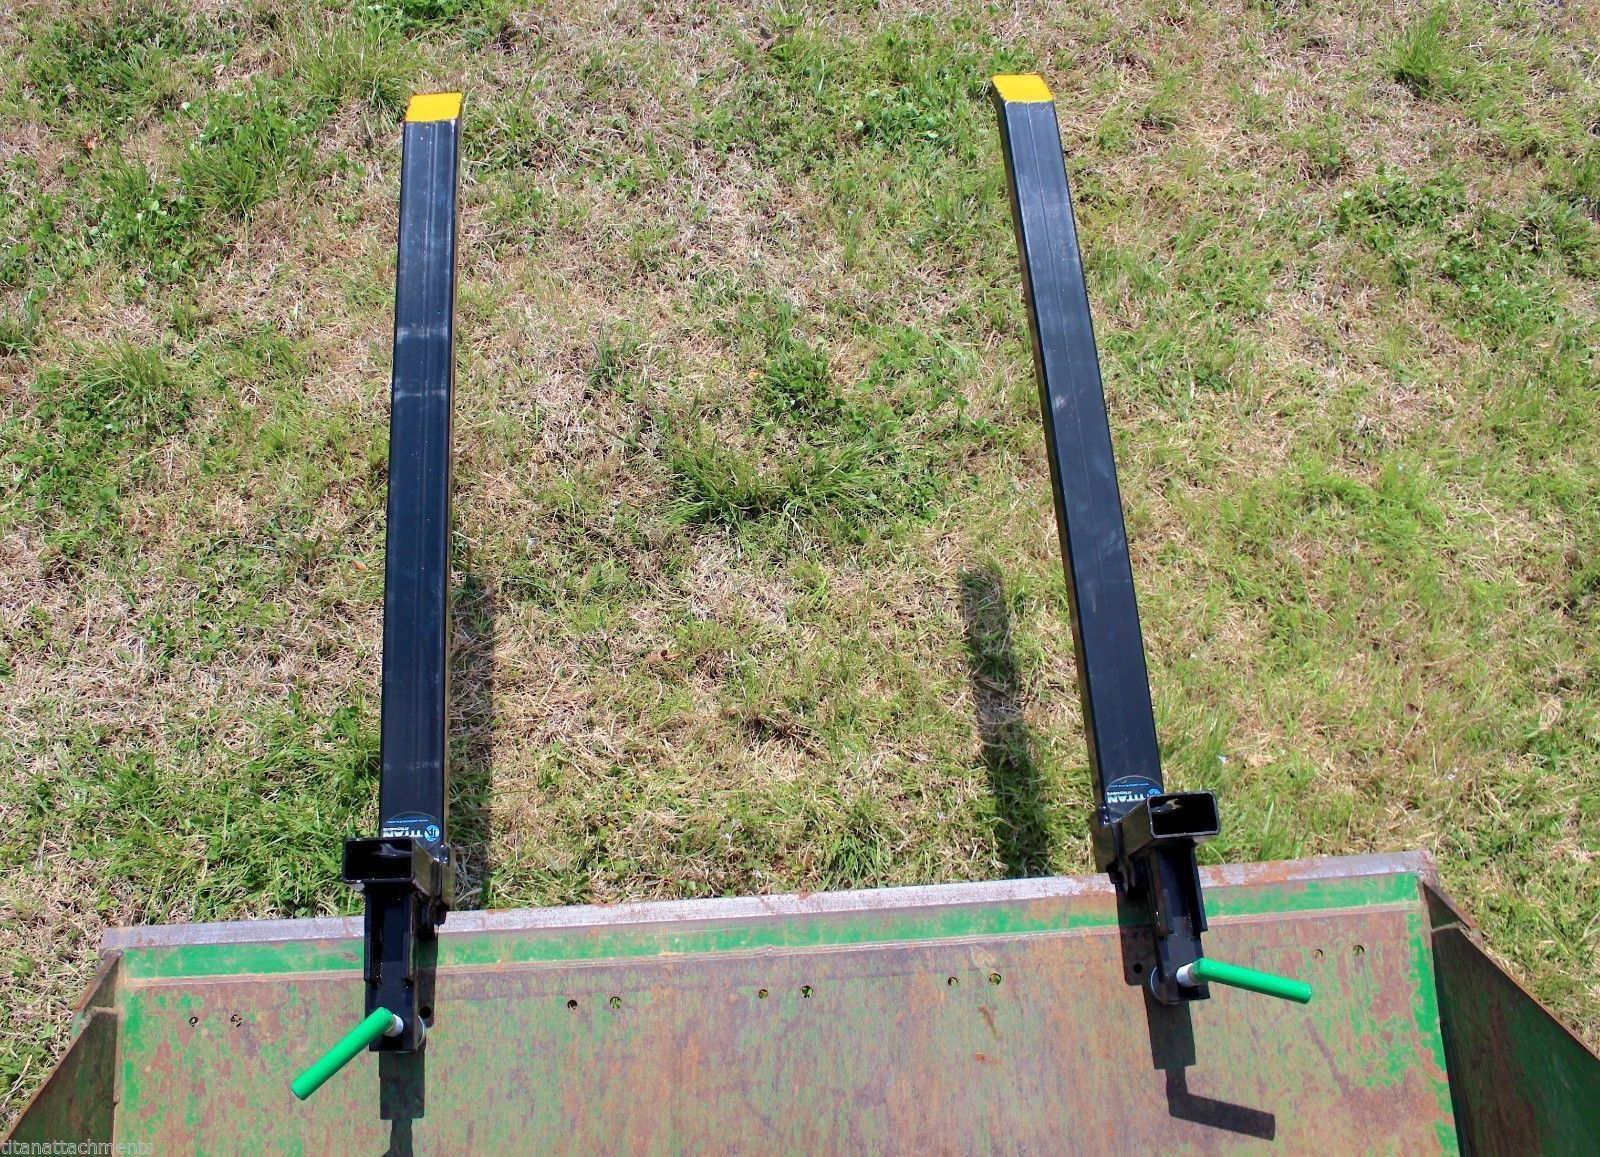 Tractor Bucket Forks : Lbs clamp loader pallet tractor forks attachment